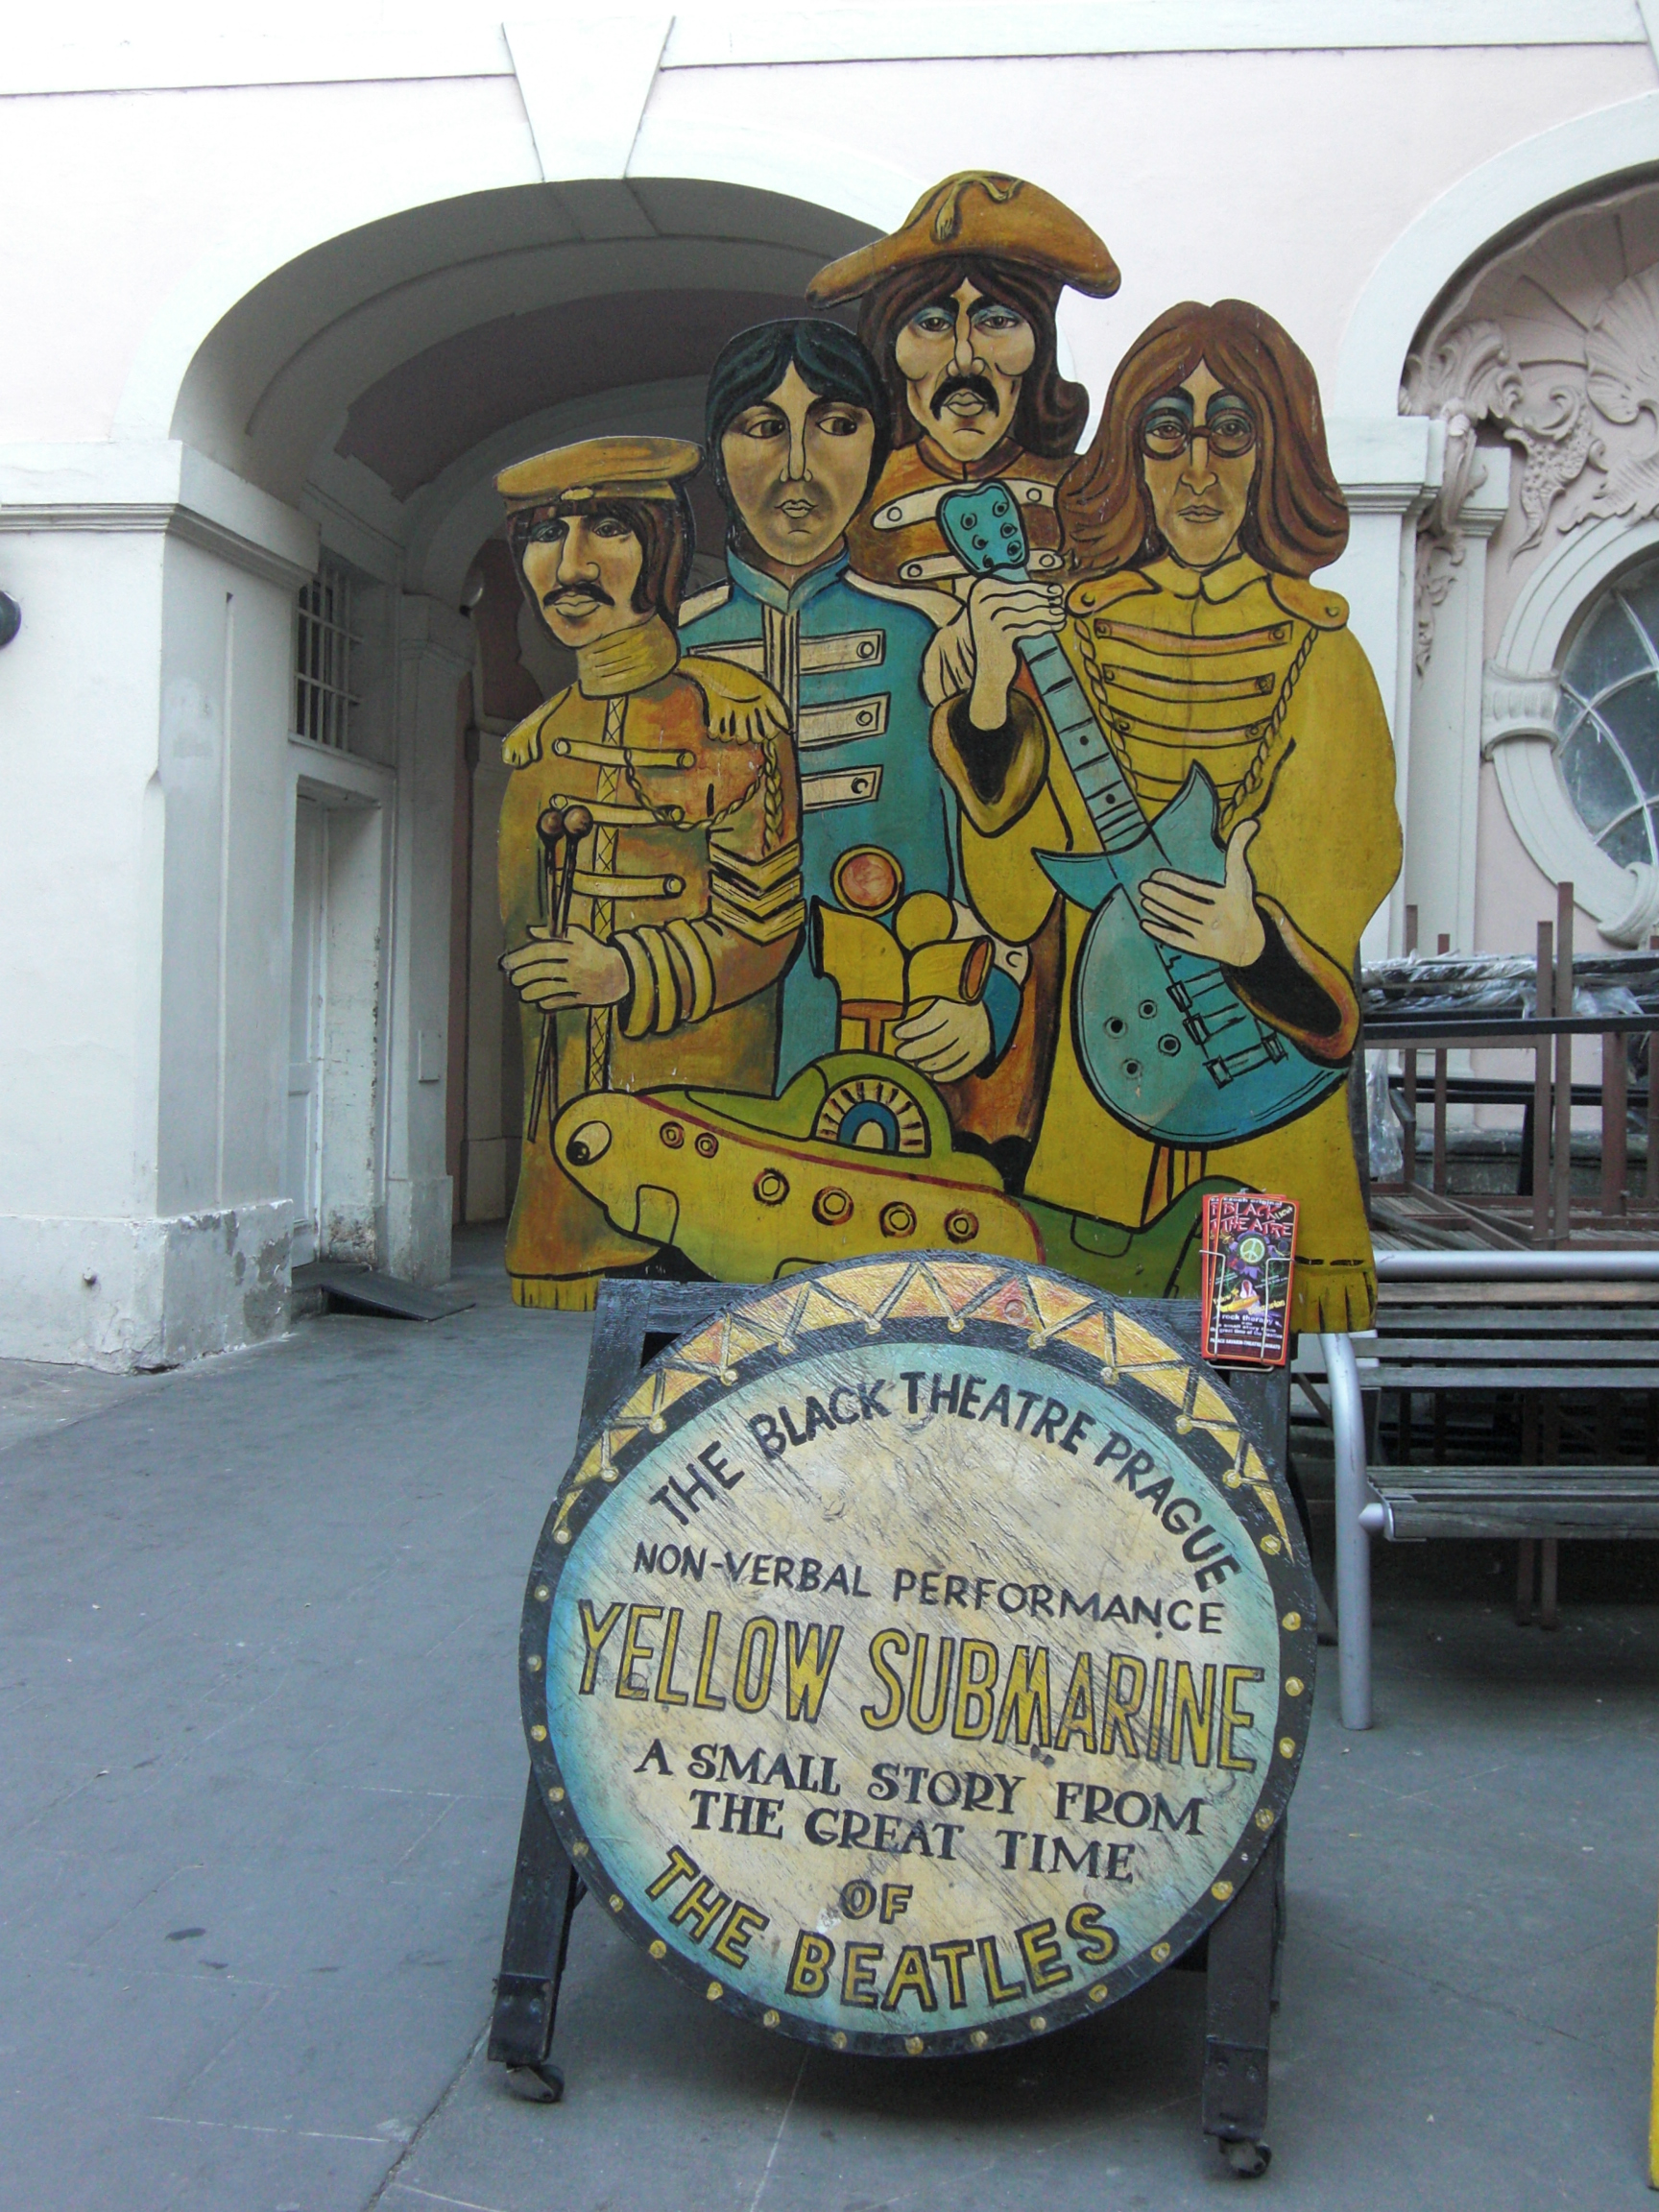 The Beatles Black Theater, Theater, Sign, Prague, Black, HQ Photo